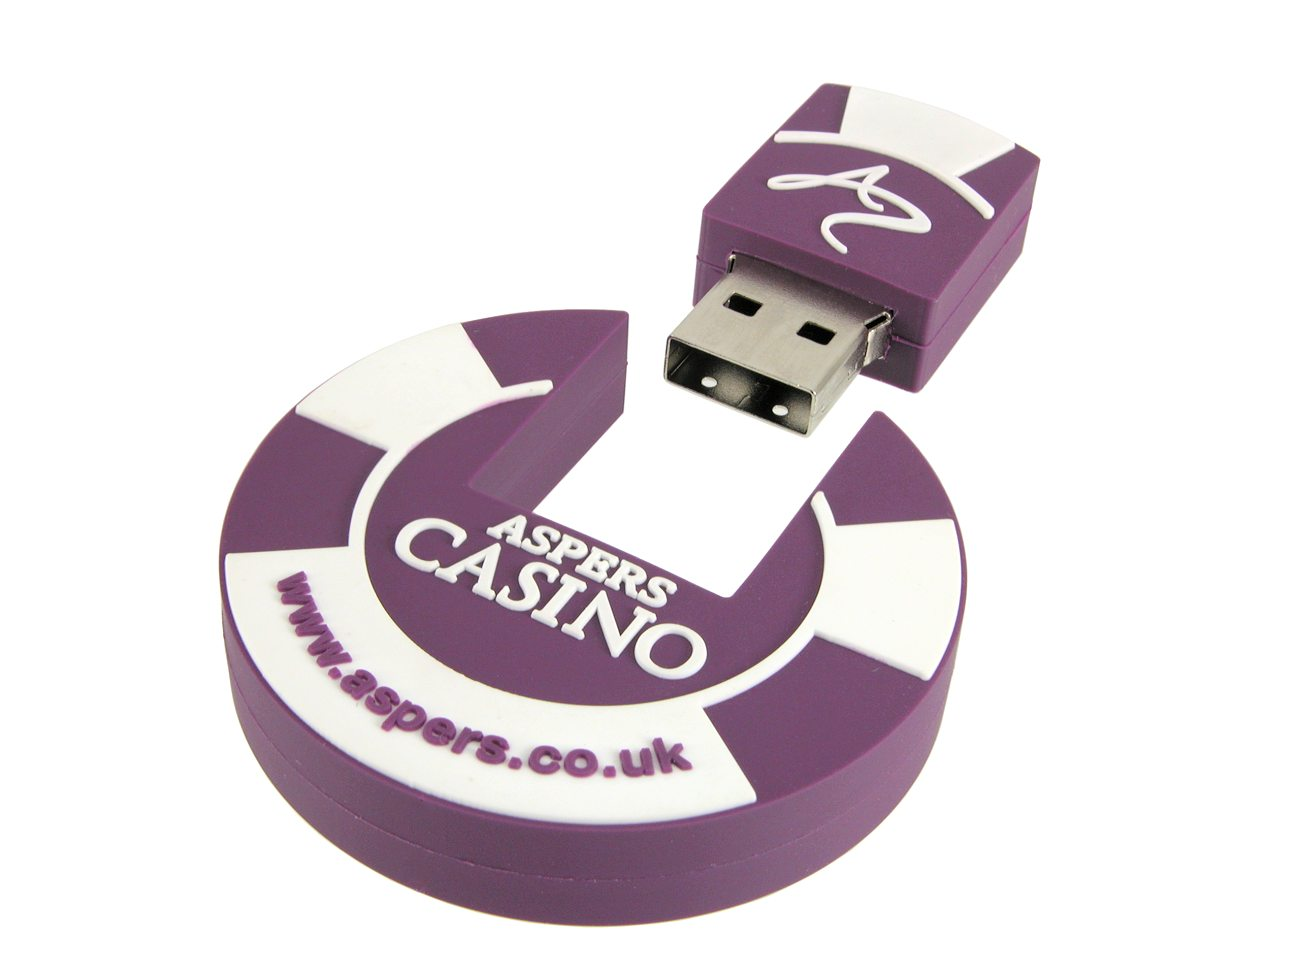 Poker Chip Flash Drive Aspers Casino Cd126